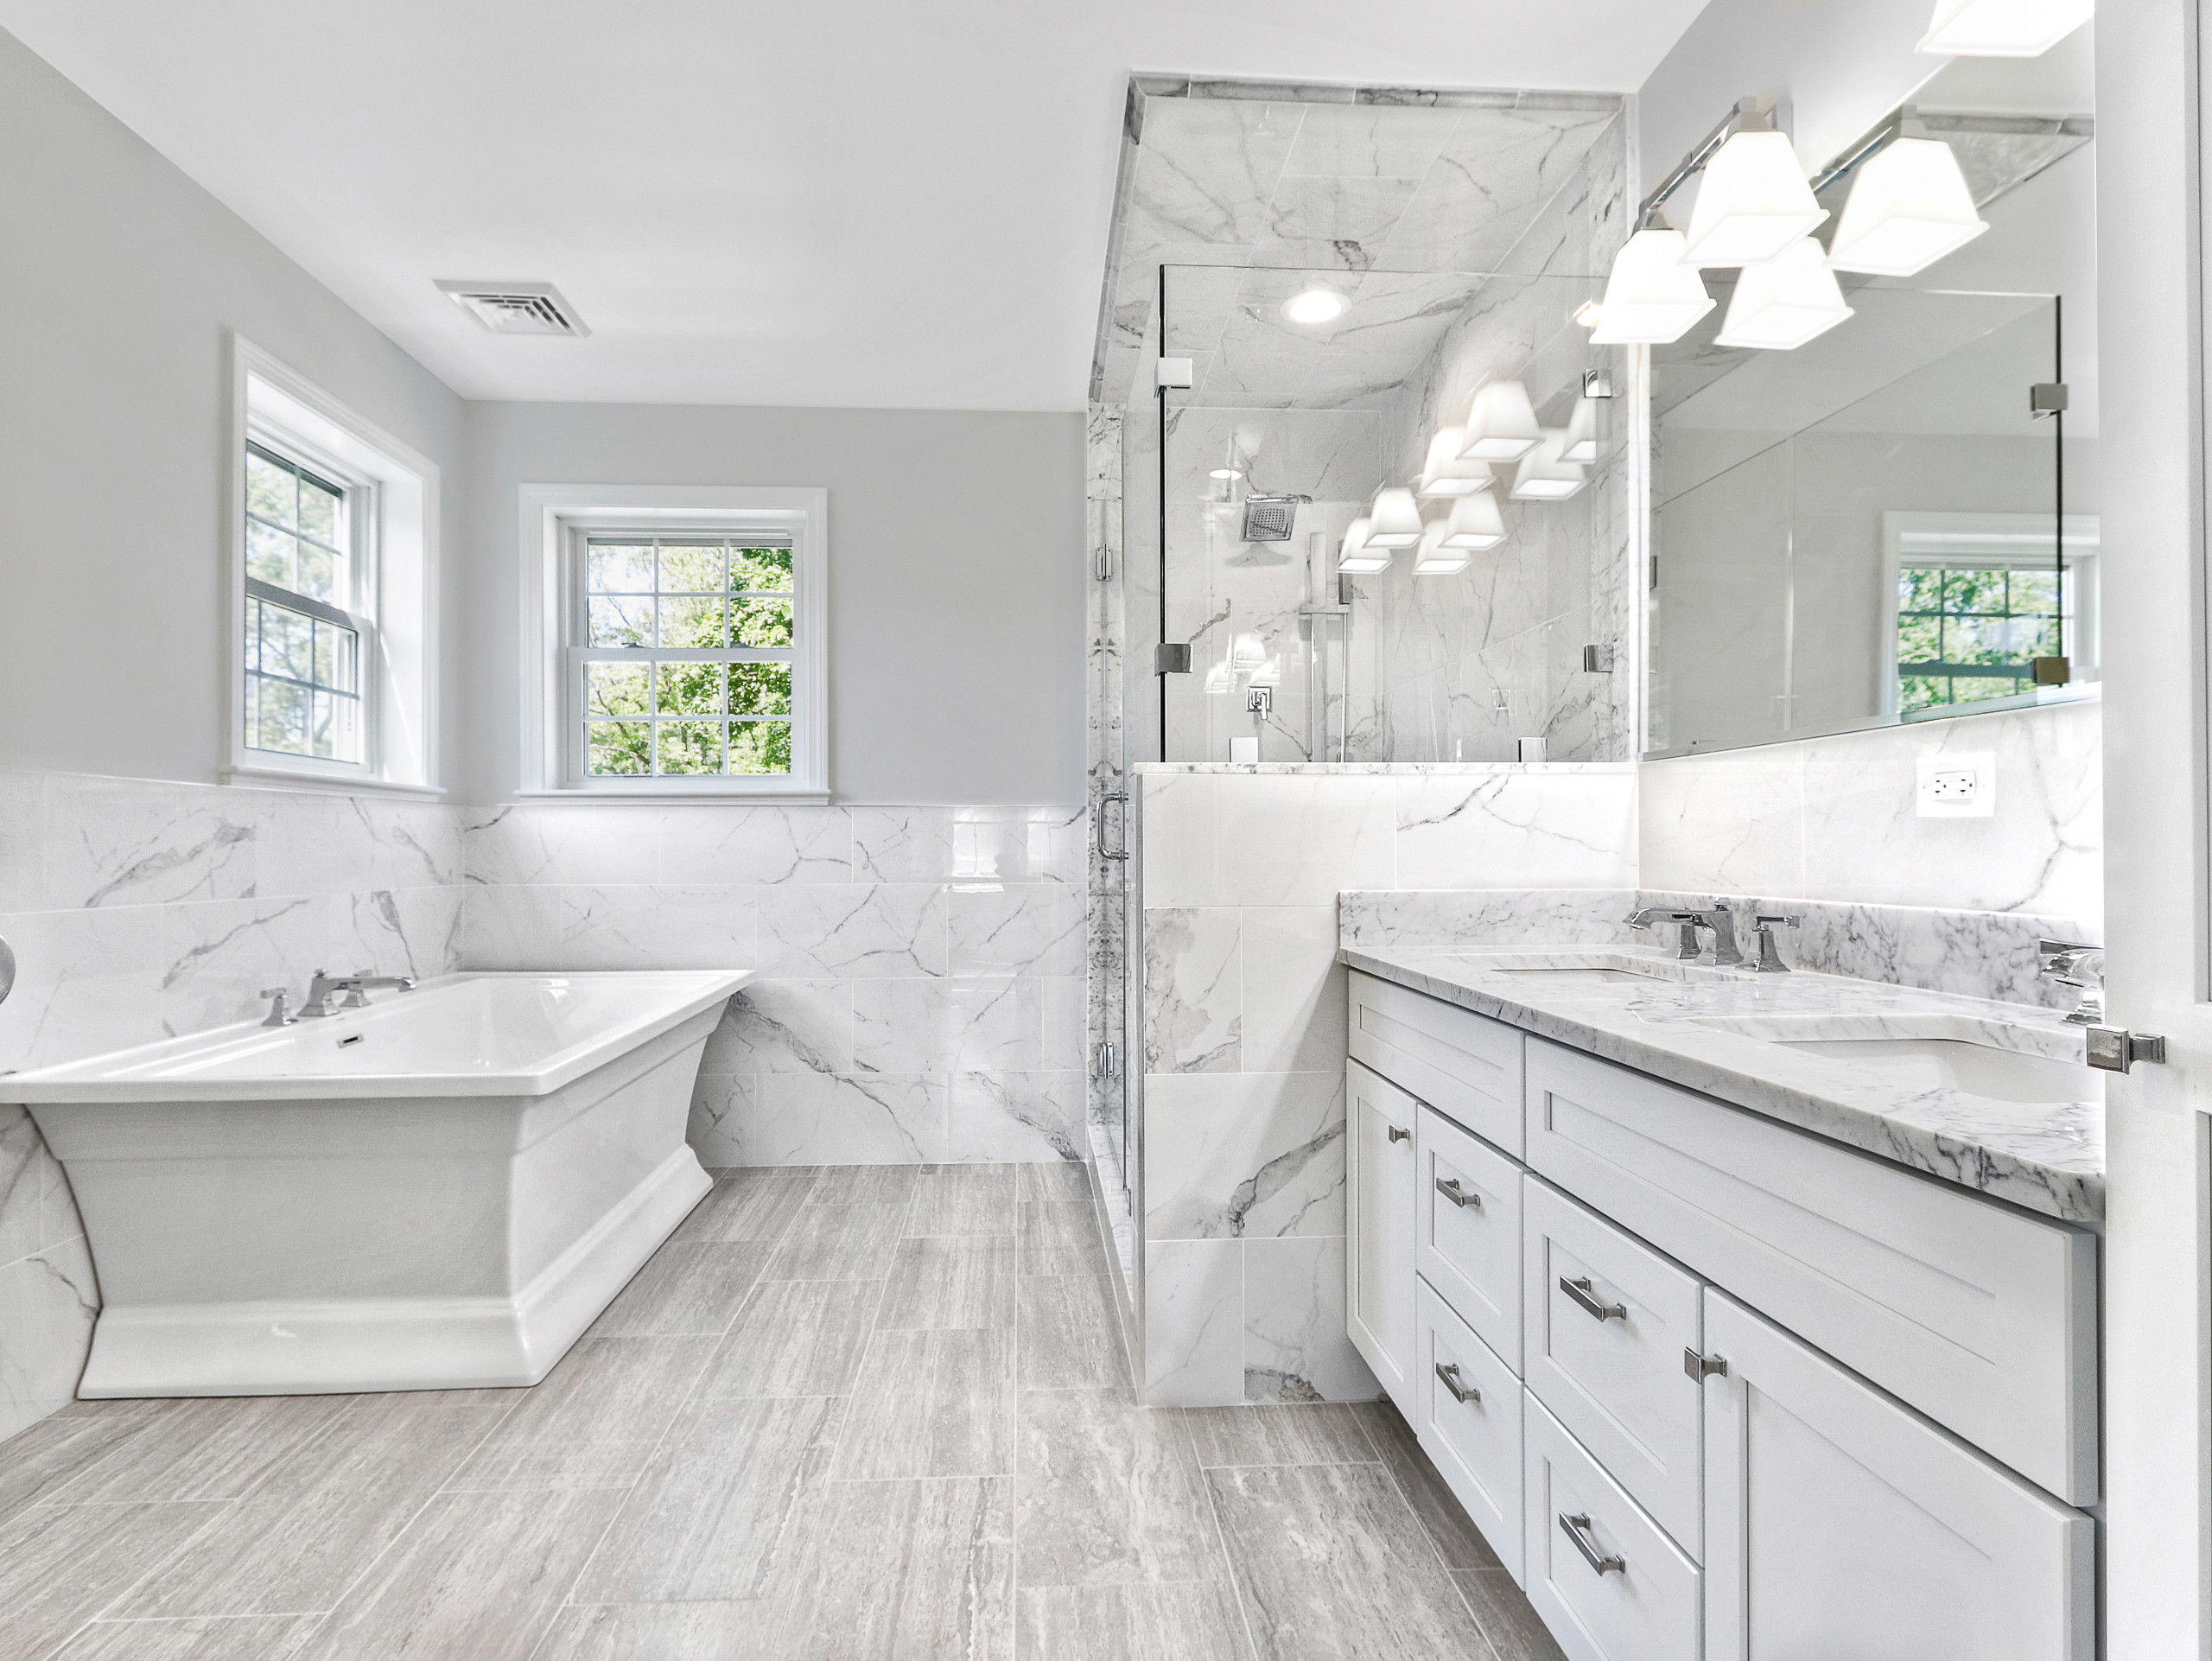 75 Beautiful Gray Tile Bathroom Pictures Ideas November 2020 Houzz